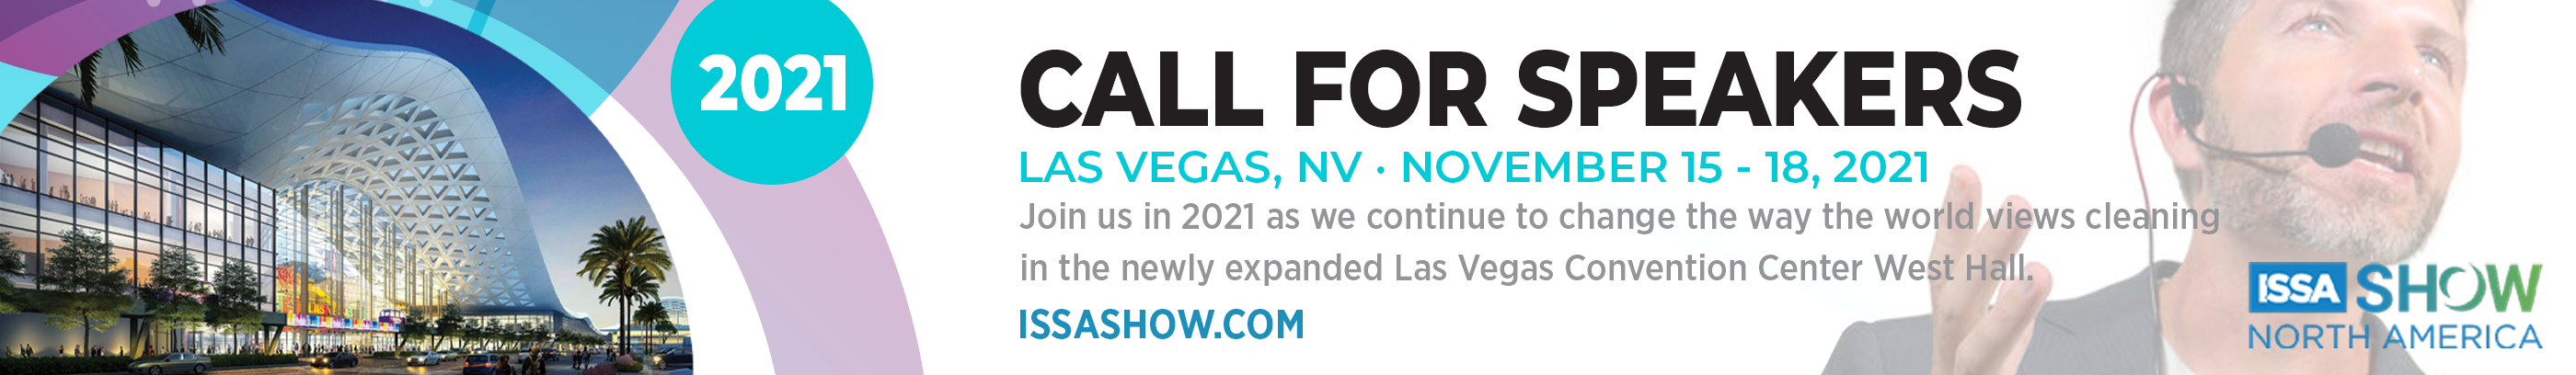 ISSA Show North America 2021 Call for Speakers